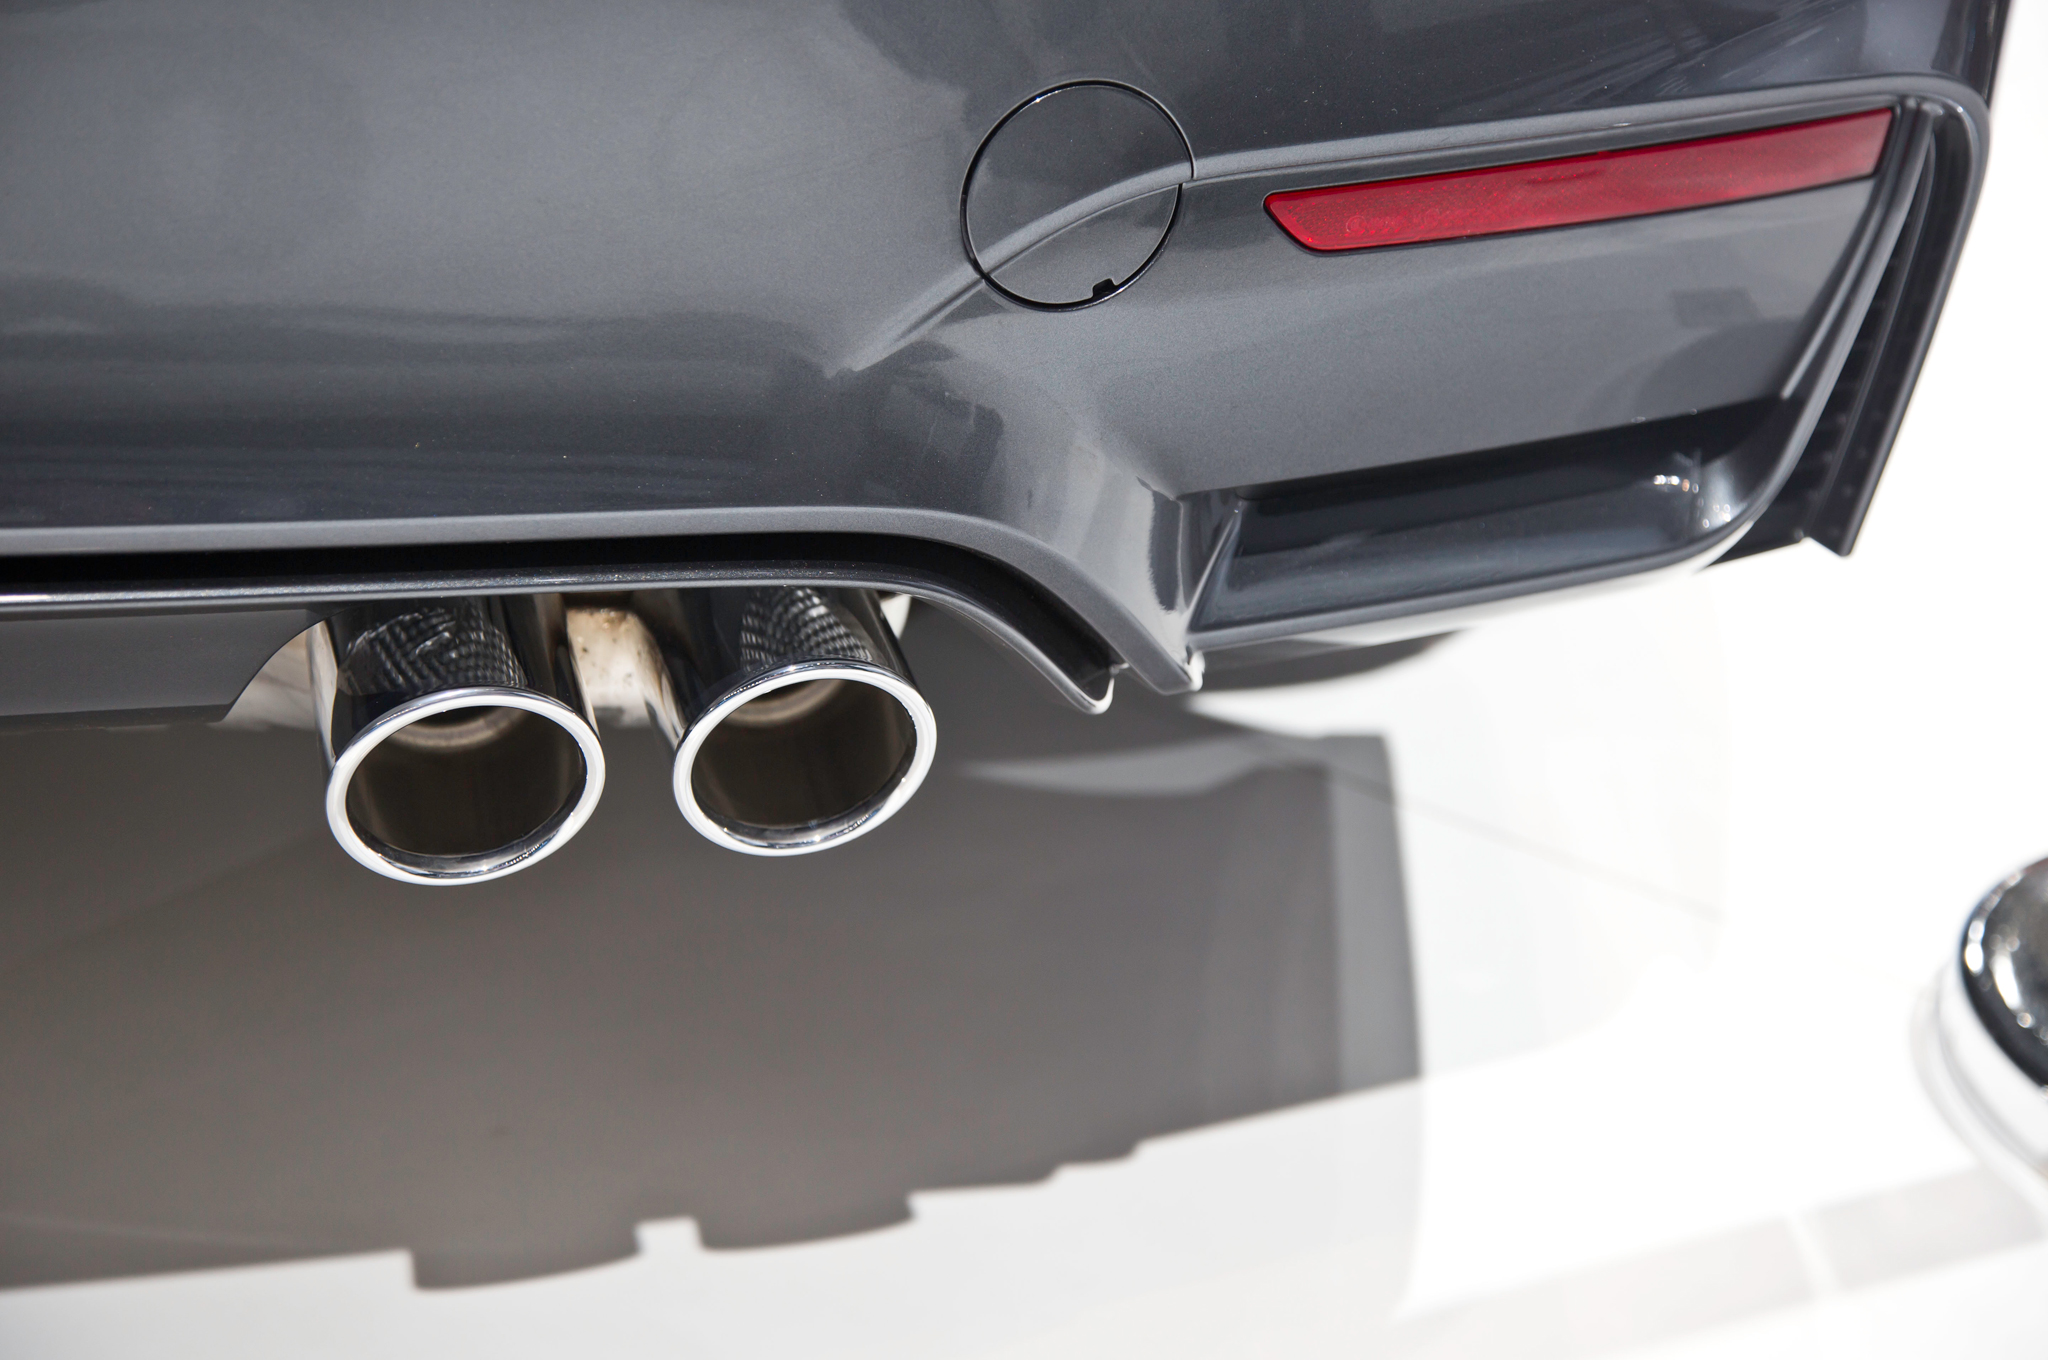 2015 Bmw M4 Convertible Tailpipes Details (View 4 of 50)